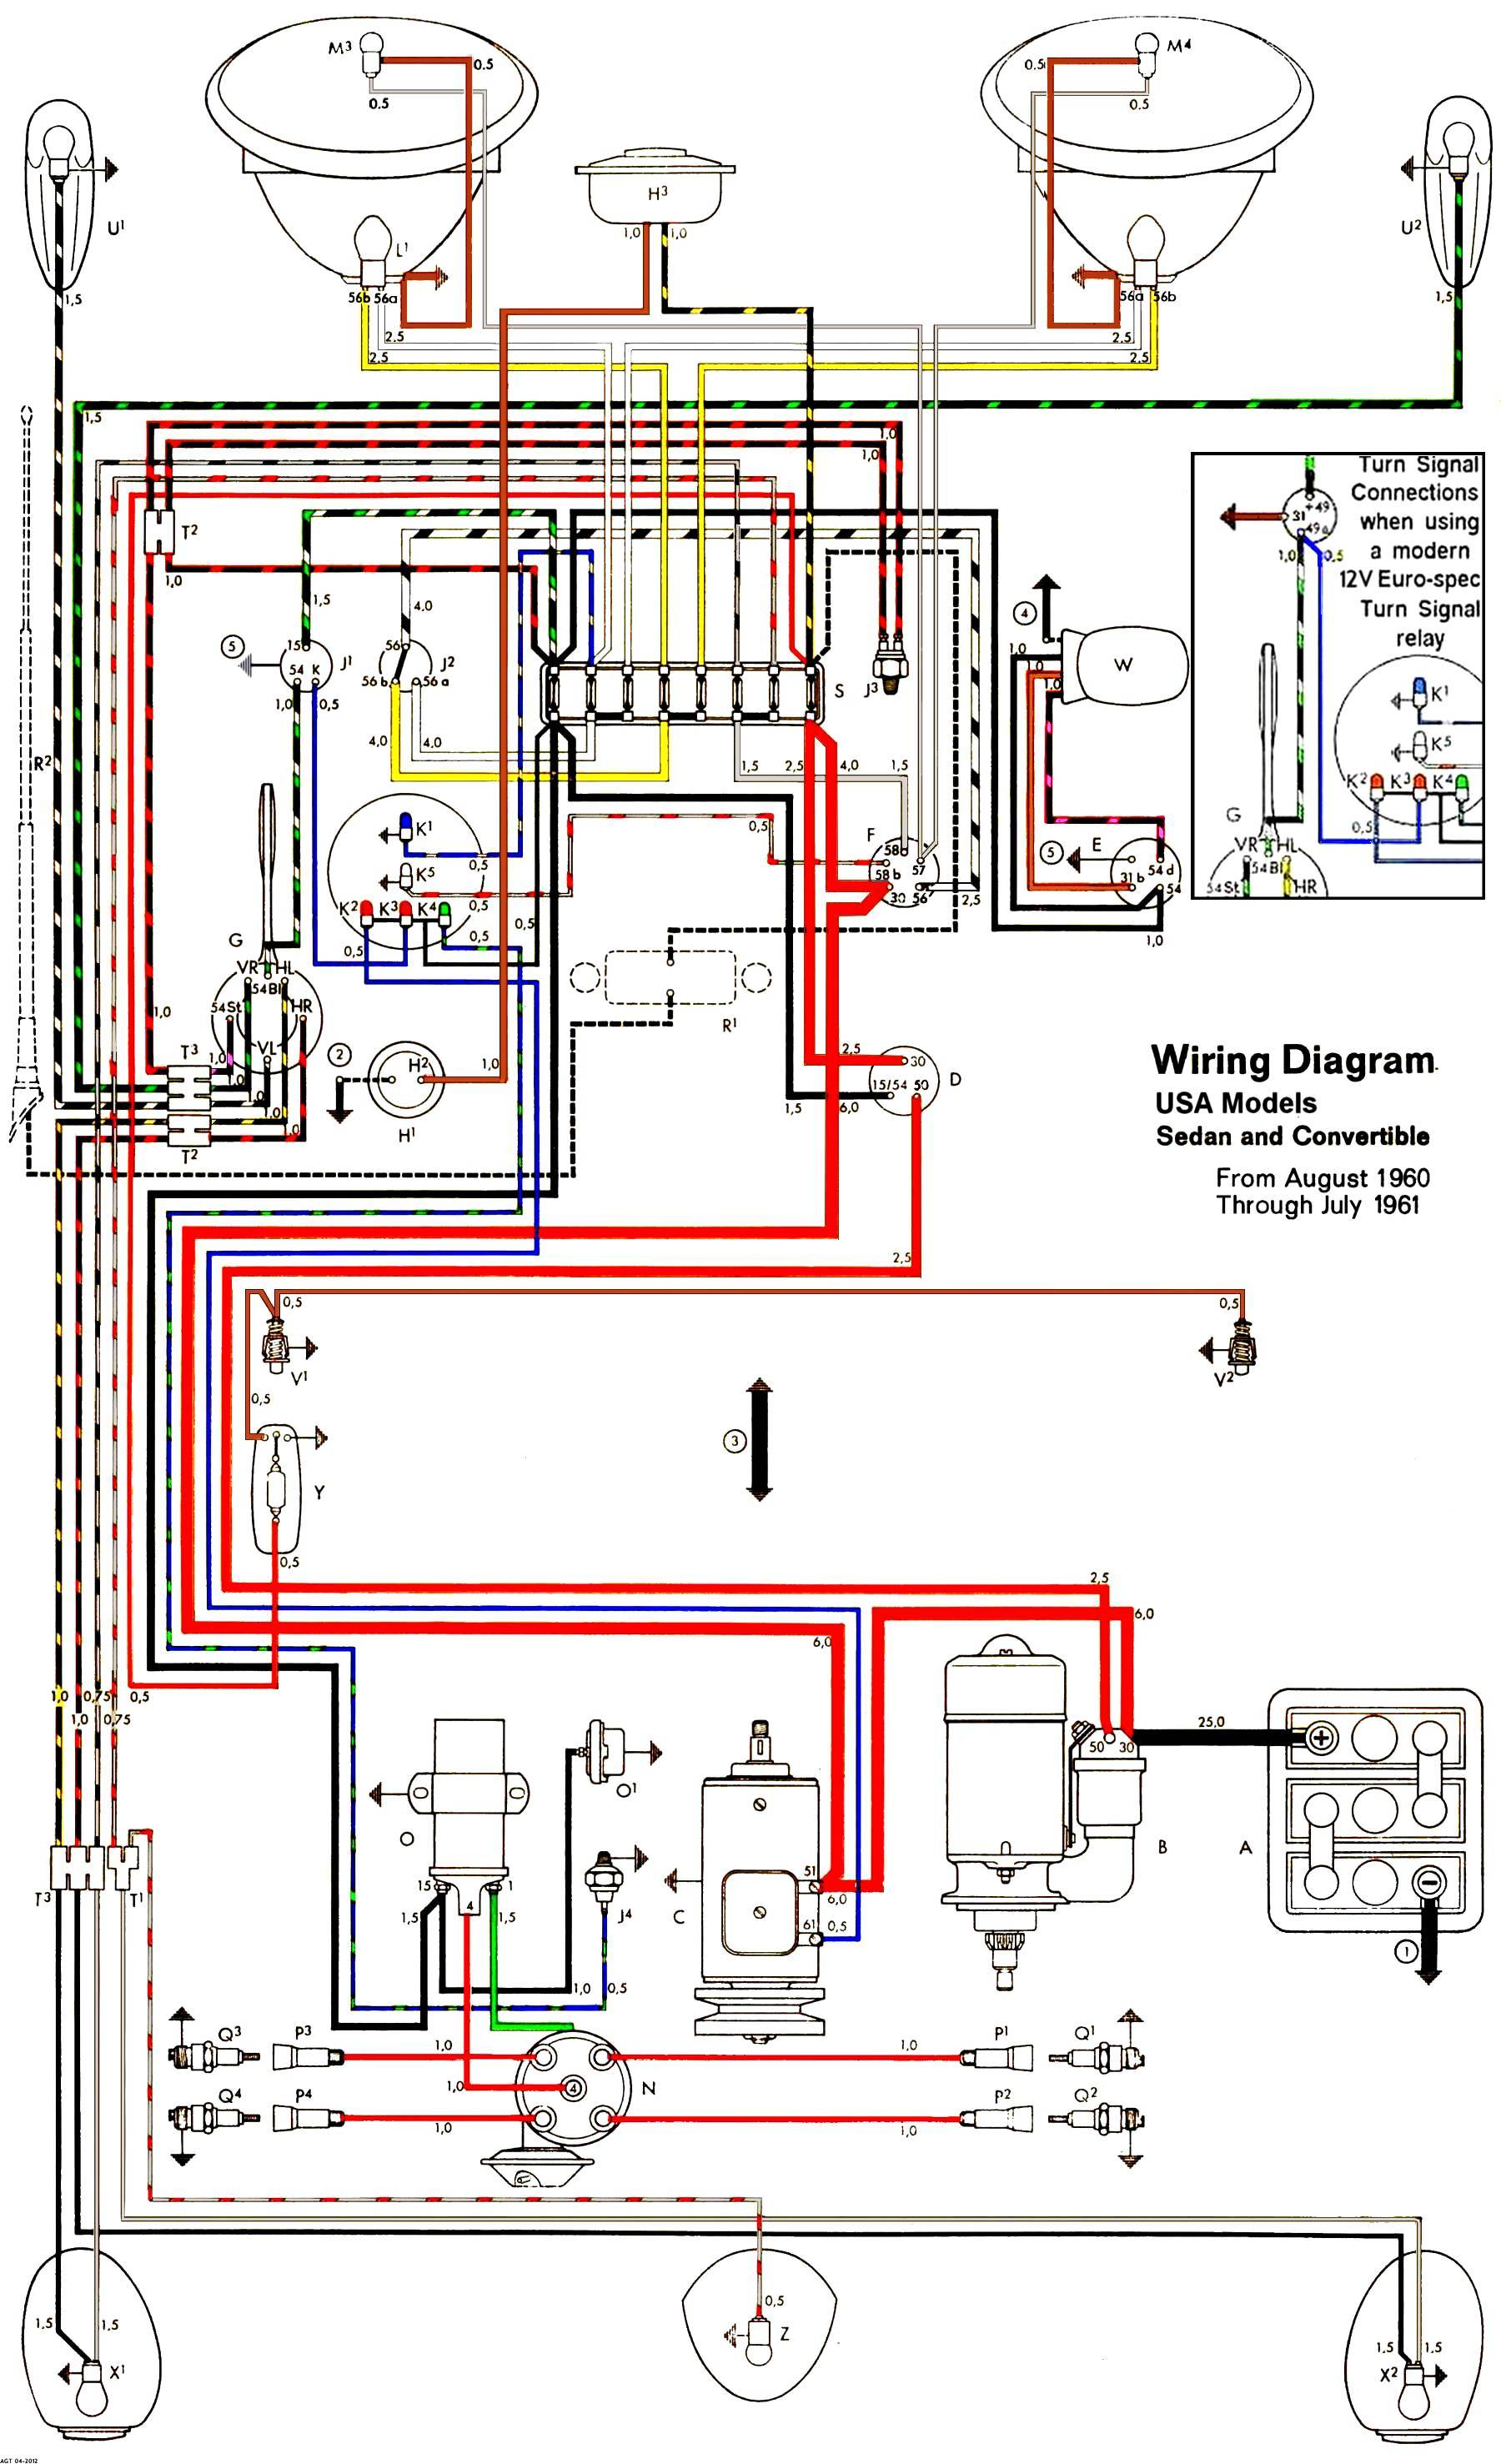 thesamba com type 1 wiring diagrams rh thesamba com 1970 vw bug wiring diagram 1970 vw beetle headlight switch wiring diagram